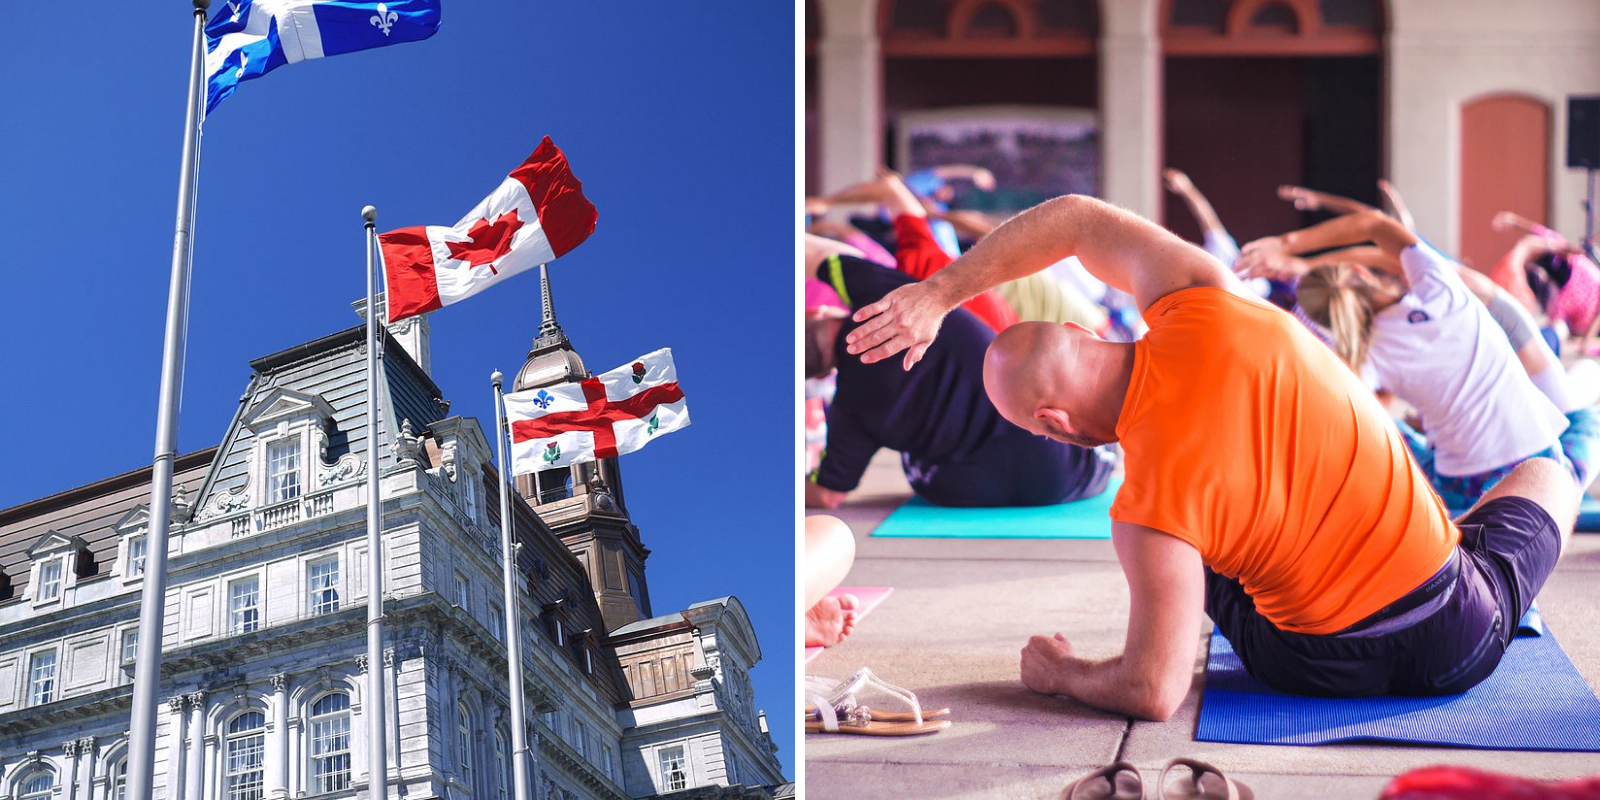 Almost 200 fitness-related businesses in Quebec will defy COVID-19 restrictions and re-open